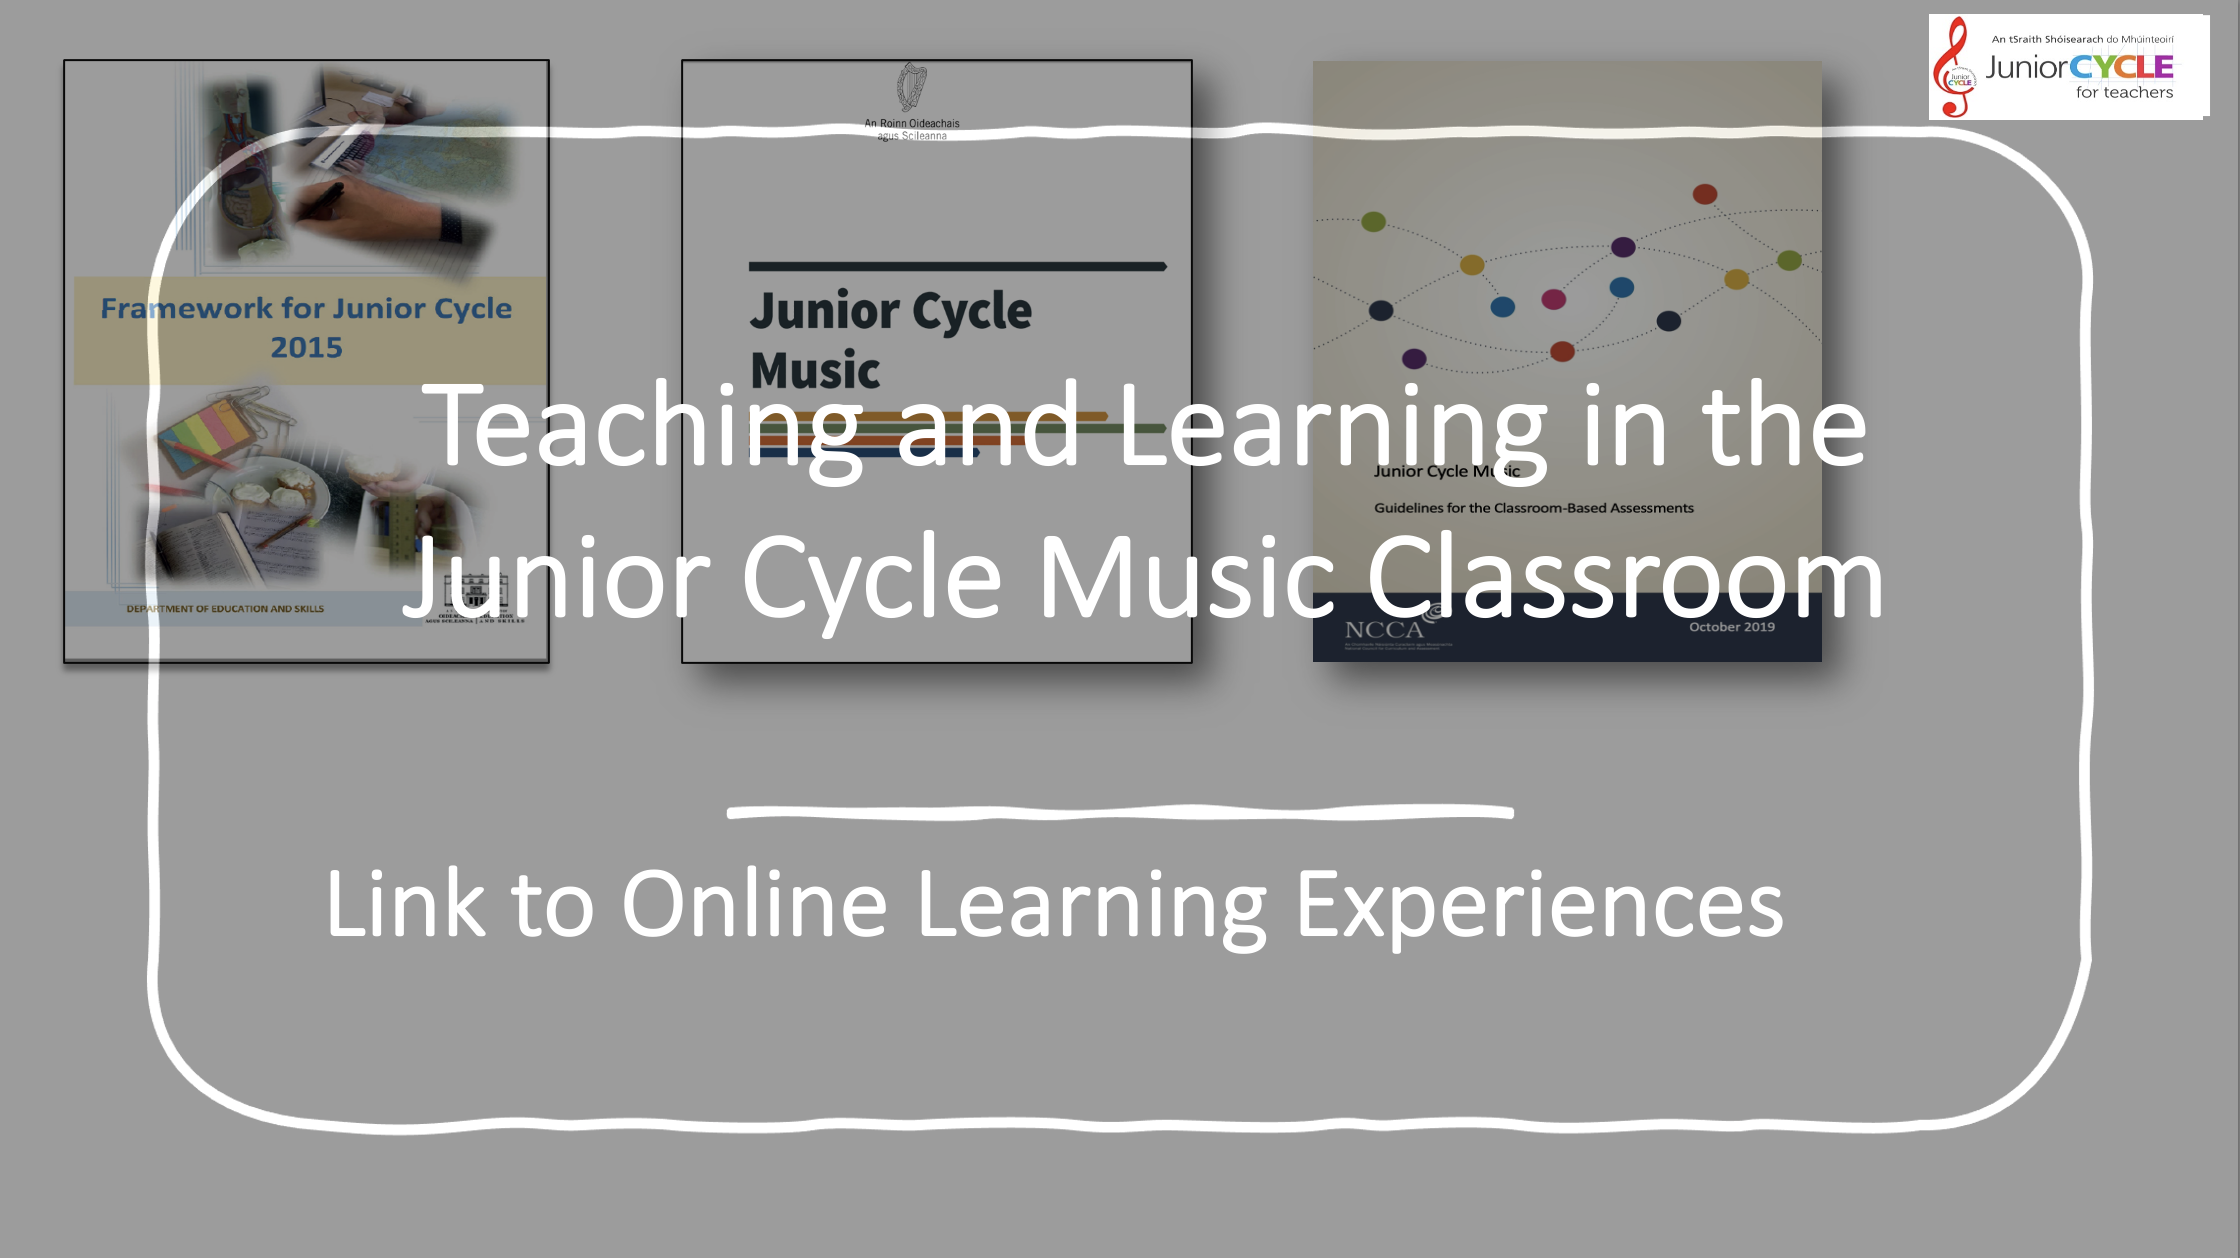 Link to Online Learning Experiences